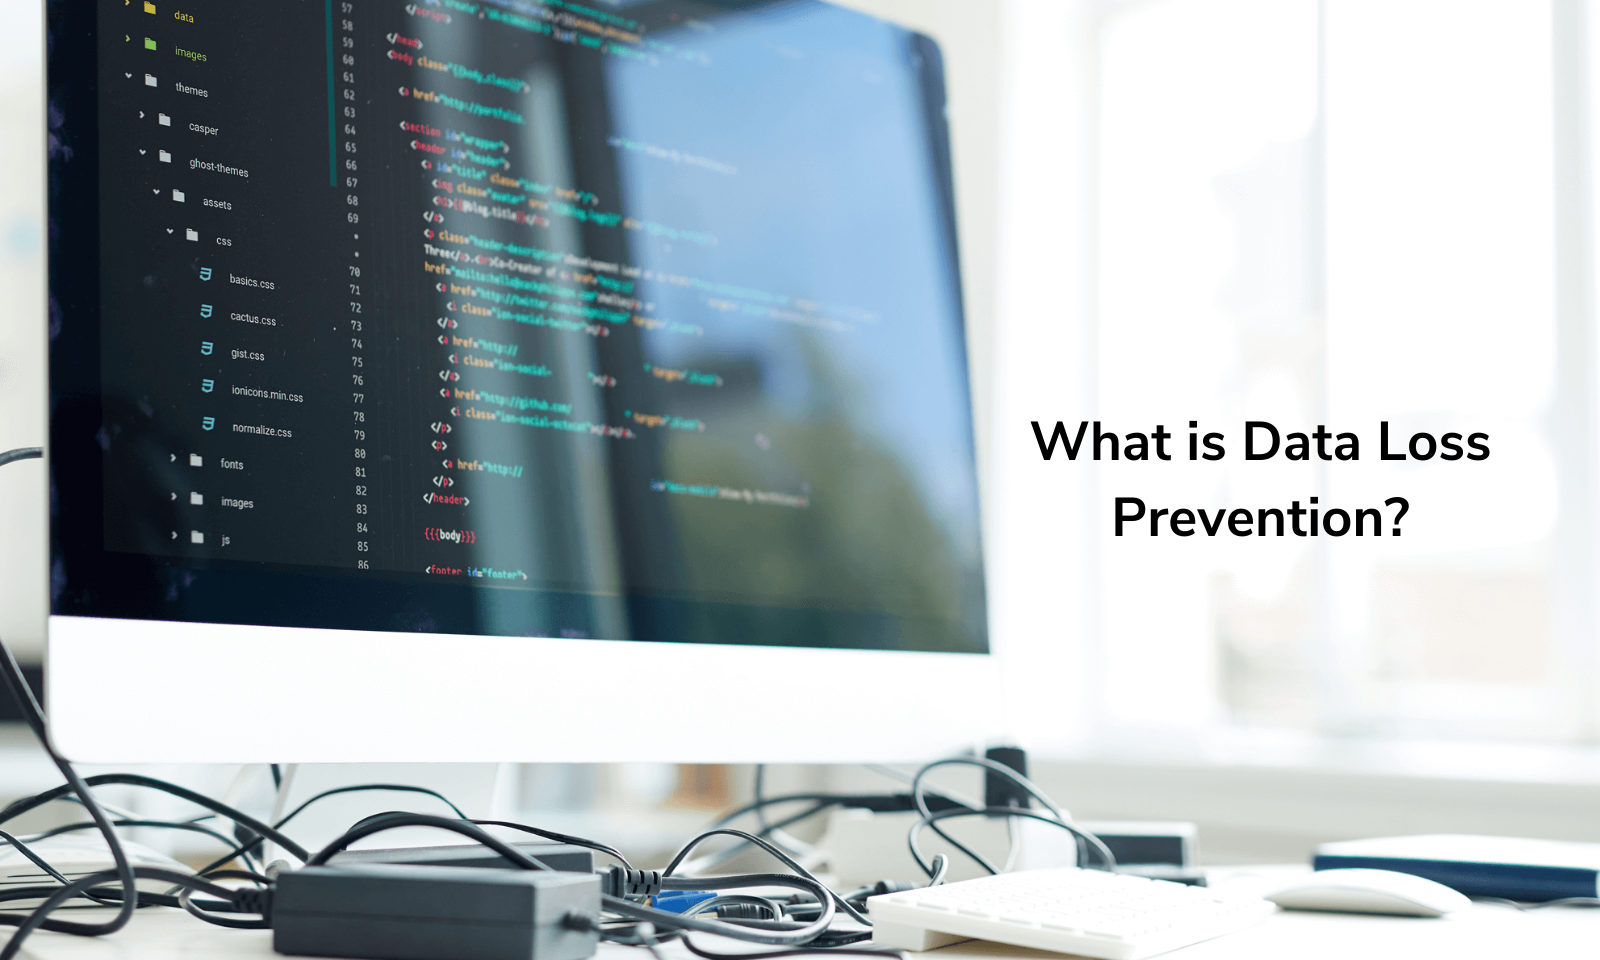 What is Data Loss Prevention?